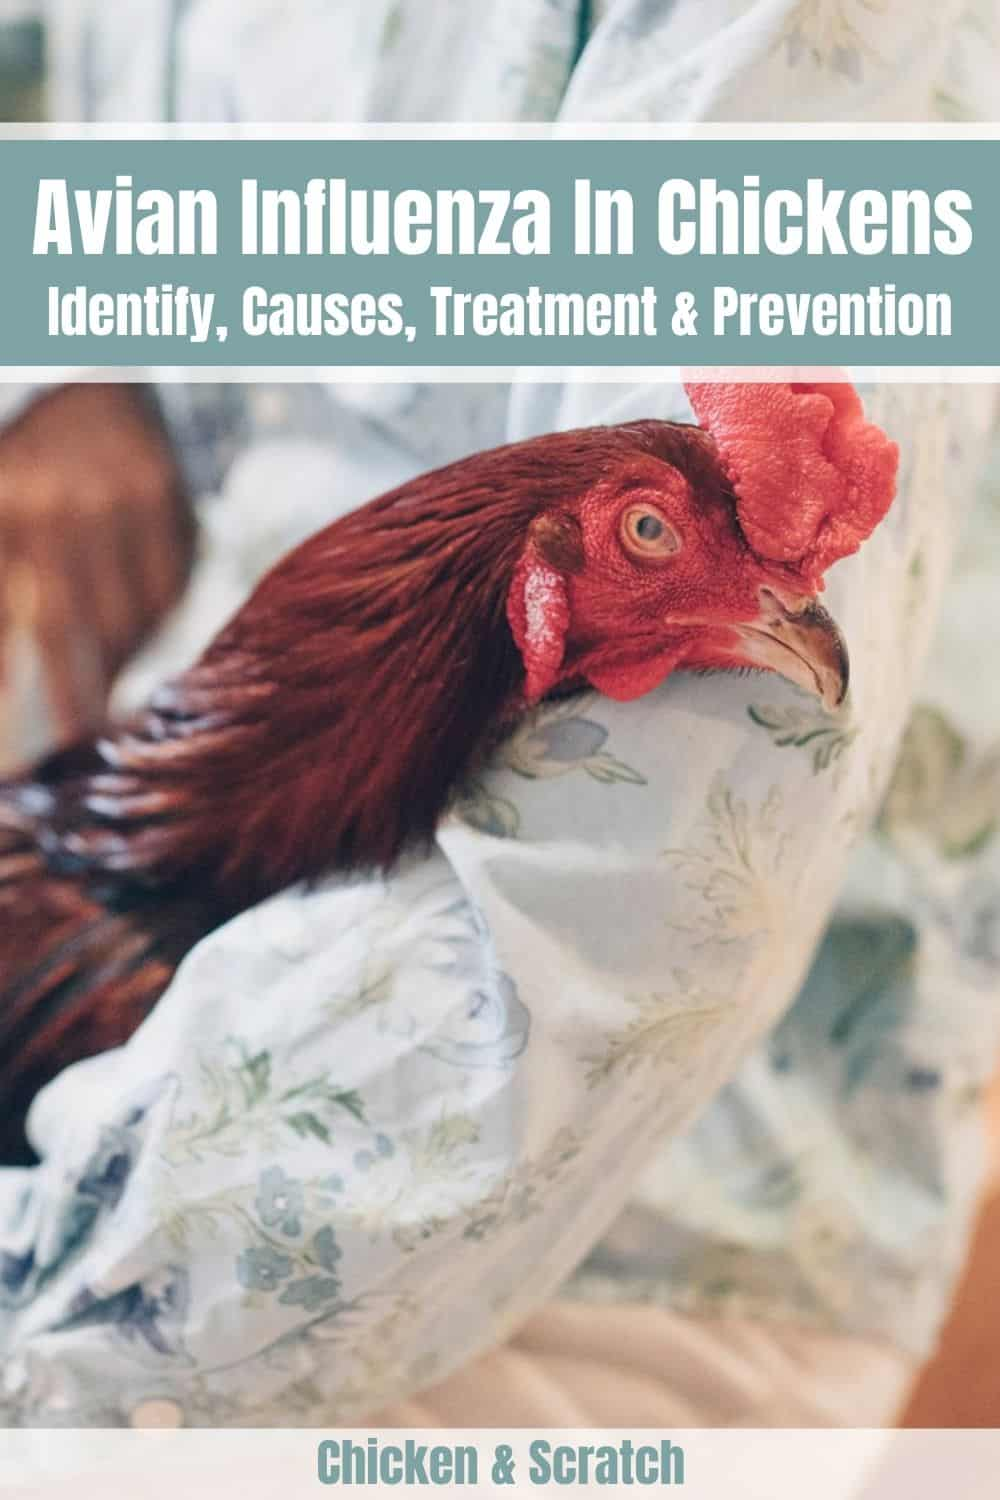 how to prevent bird flu in chickens